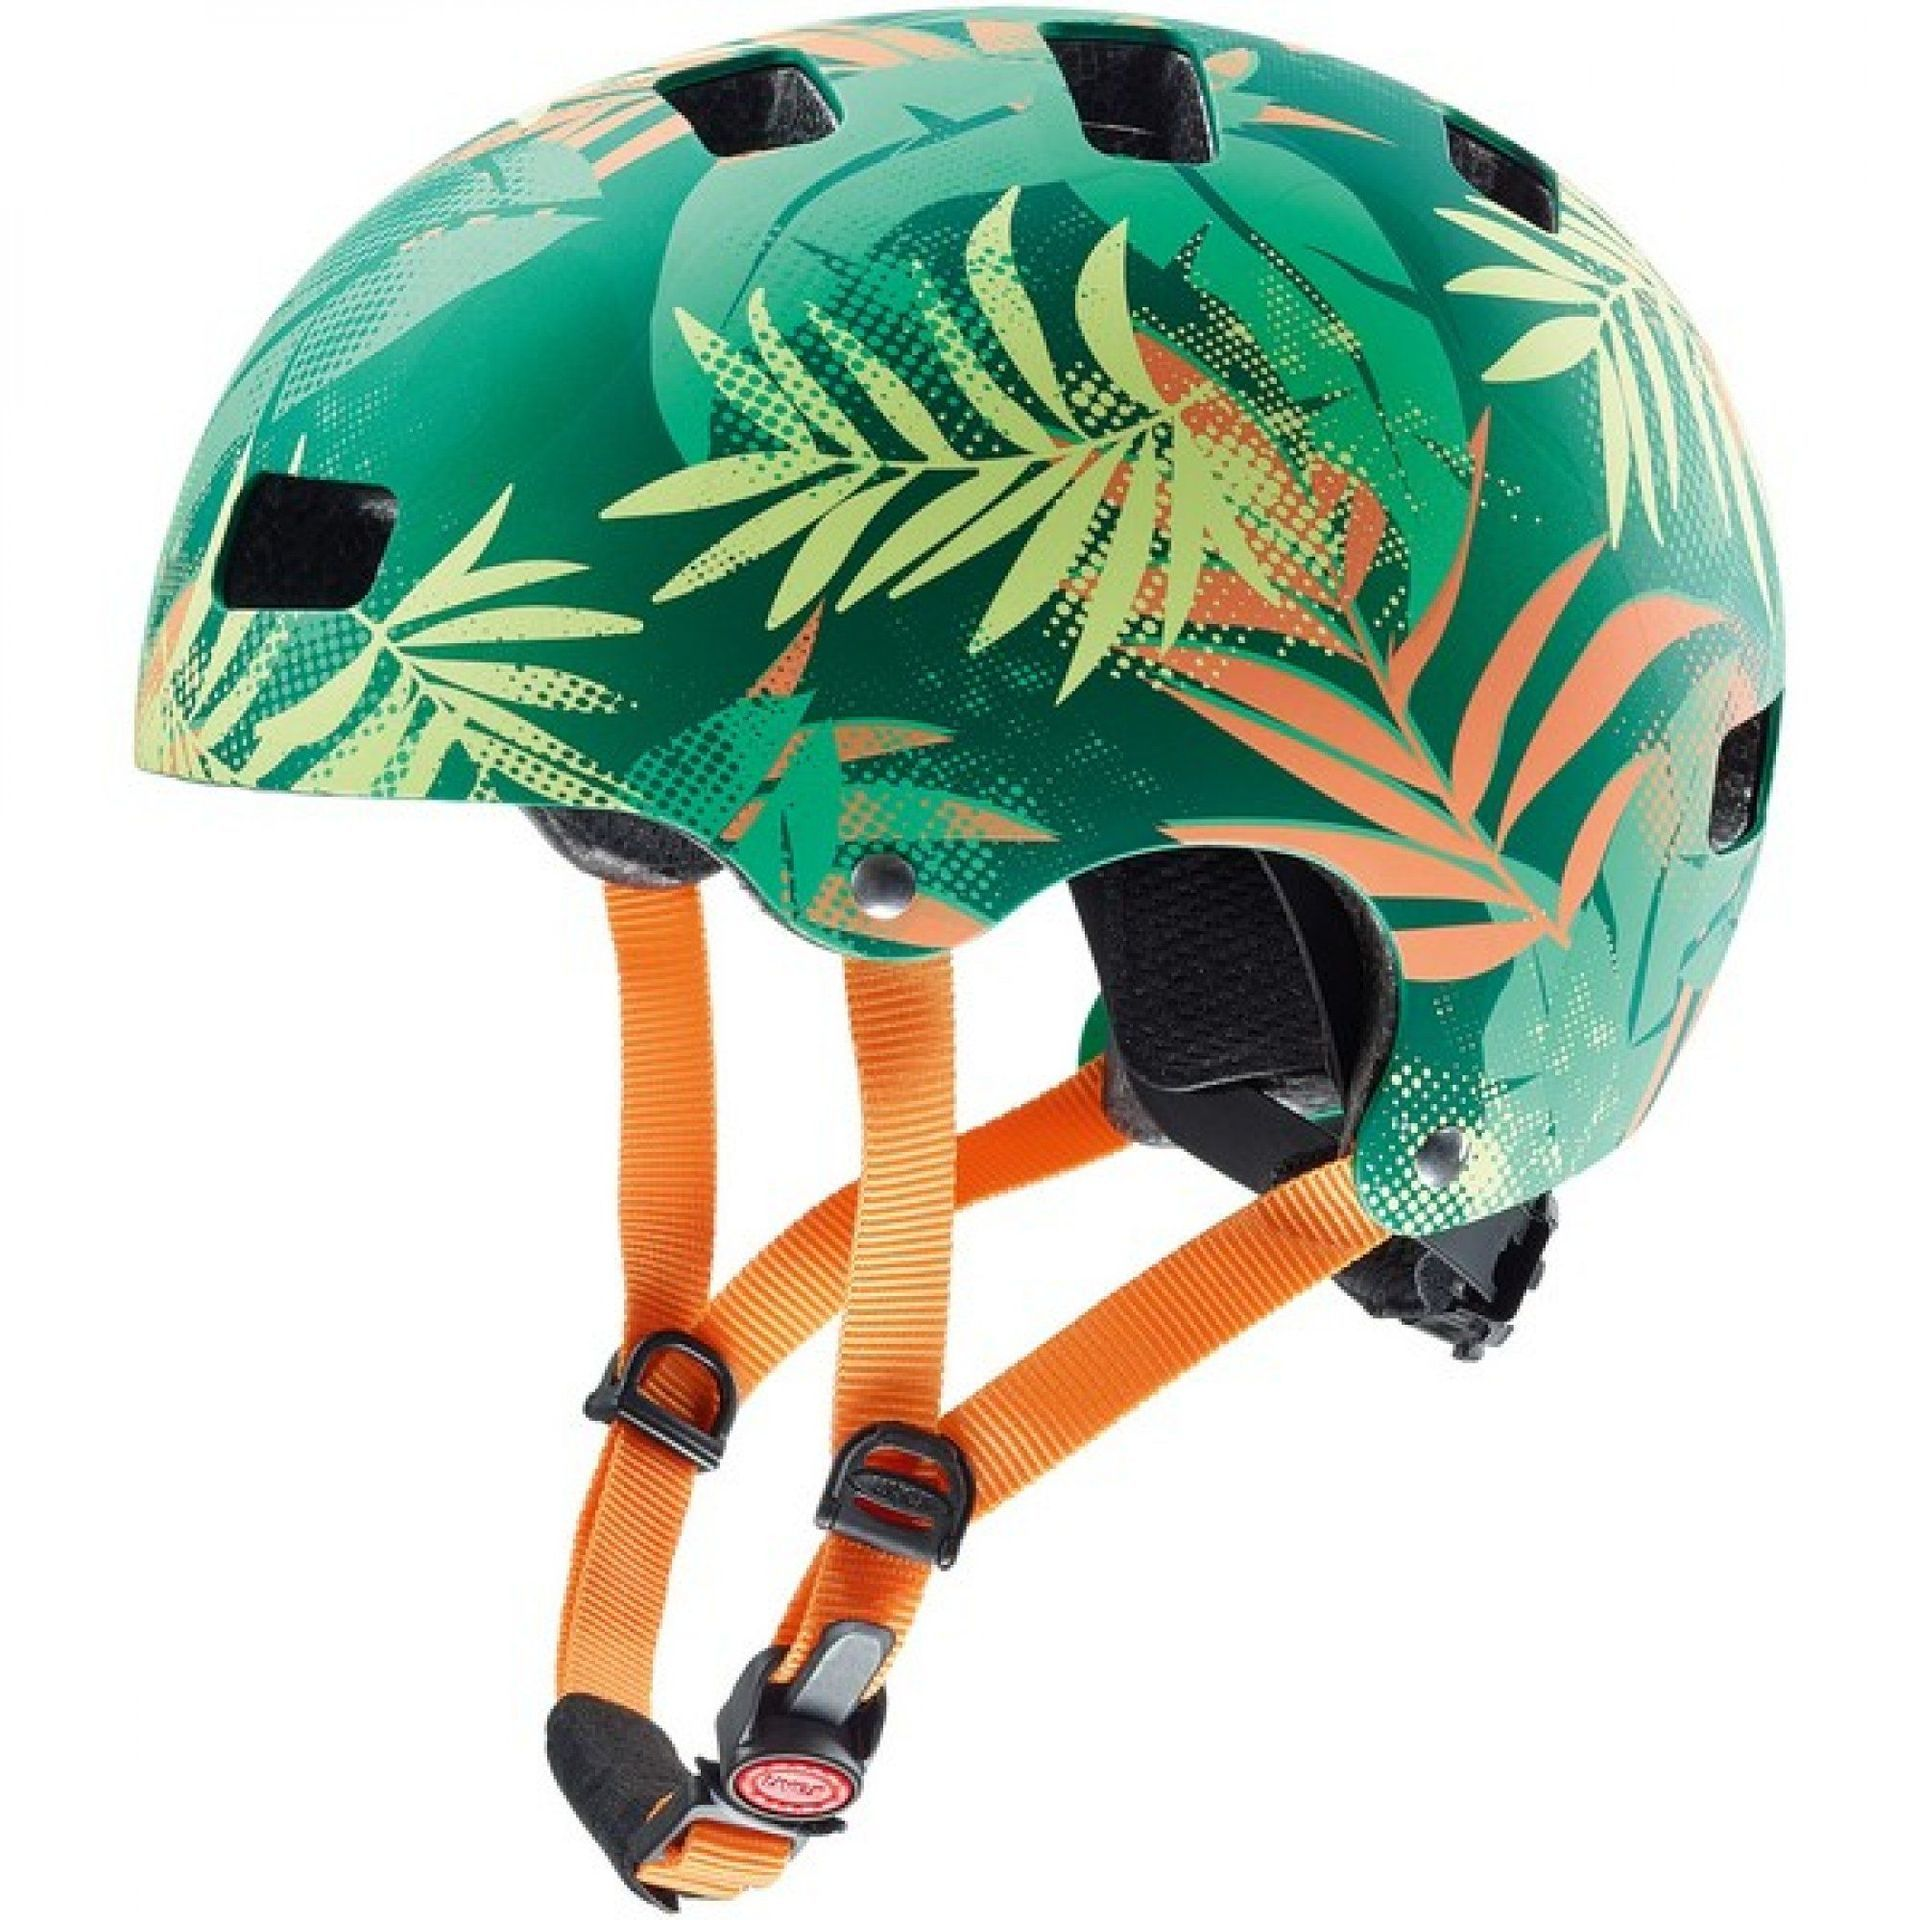 KASK ROWEROWY UVEX KID 3 CC green orange